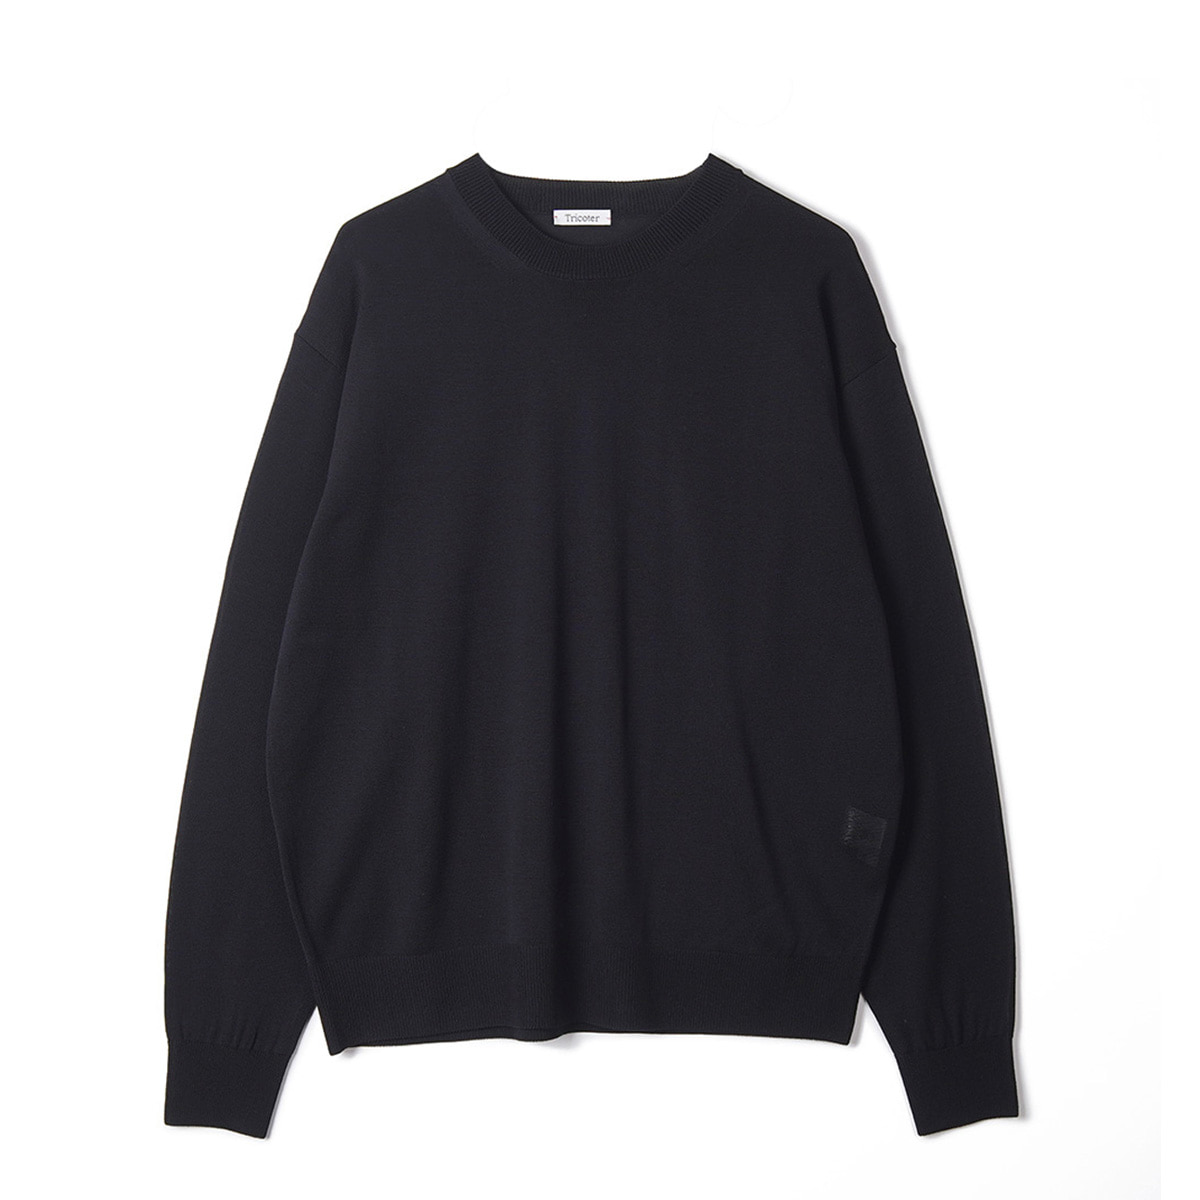 [TRICOTER] SUMMER YARN CREW NECK PULLOVER 'BLACK'